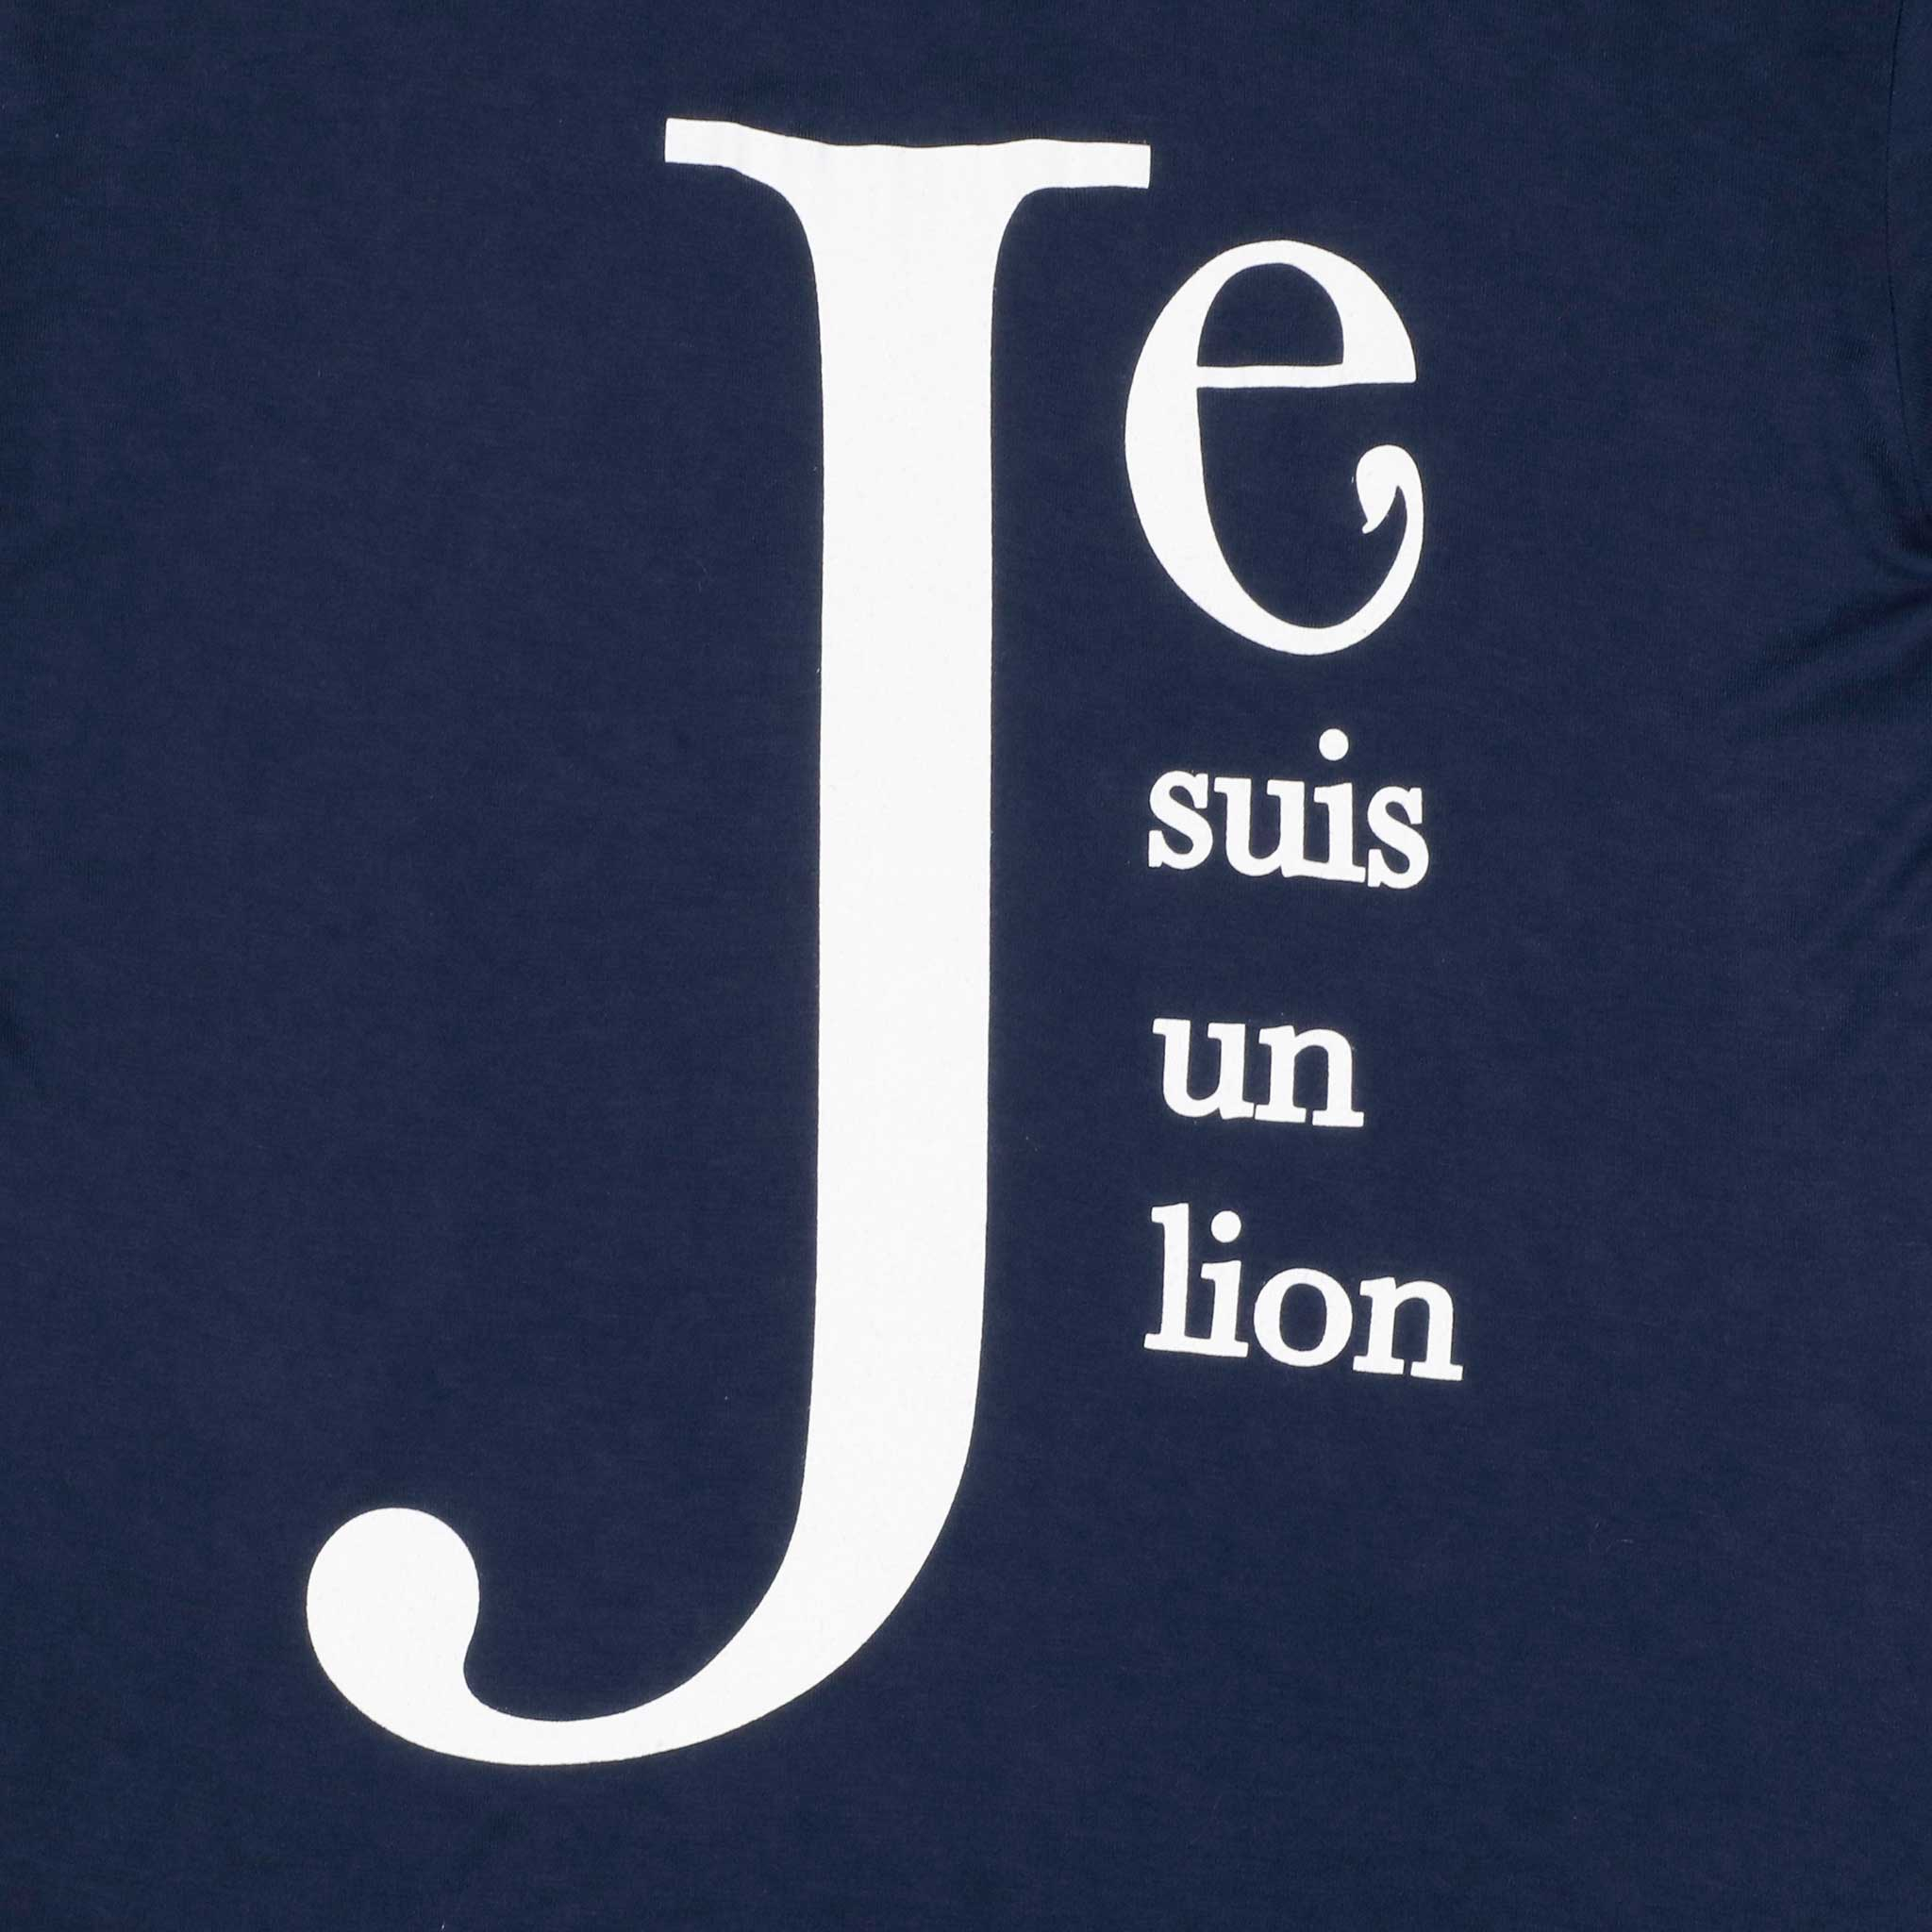 Je Suis un Lion T Shirt - Vaughn de Heart